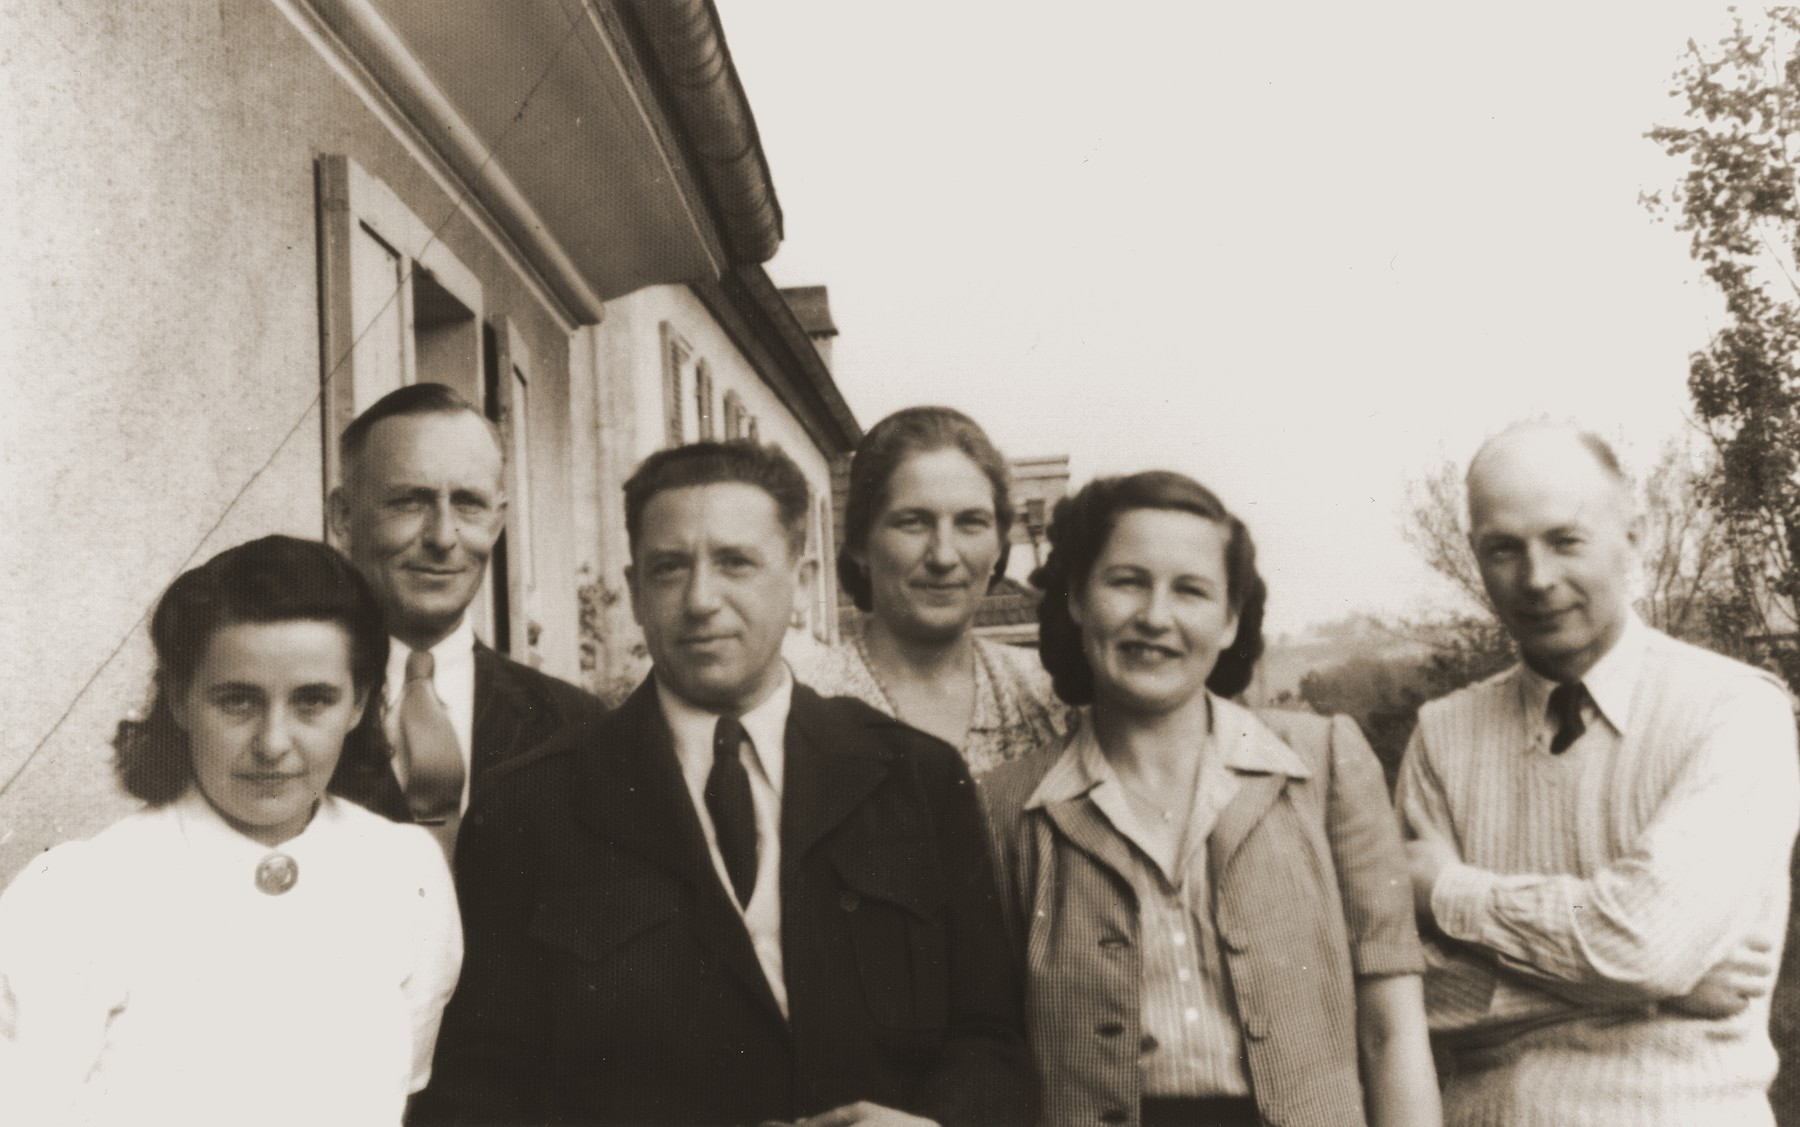 Michel Schadur (third from the left) wirh members of the UNRRA team in the Backnang displaced persons' camp.